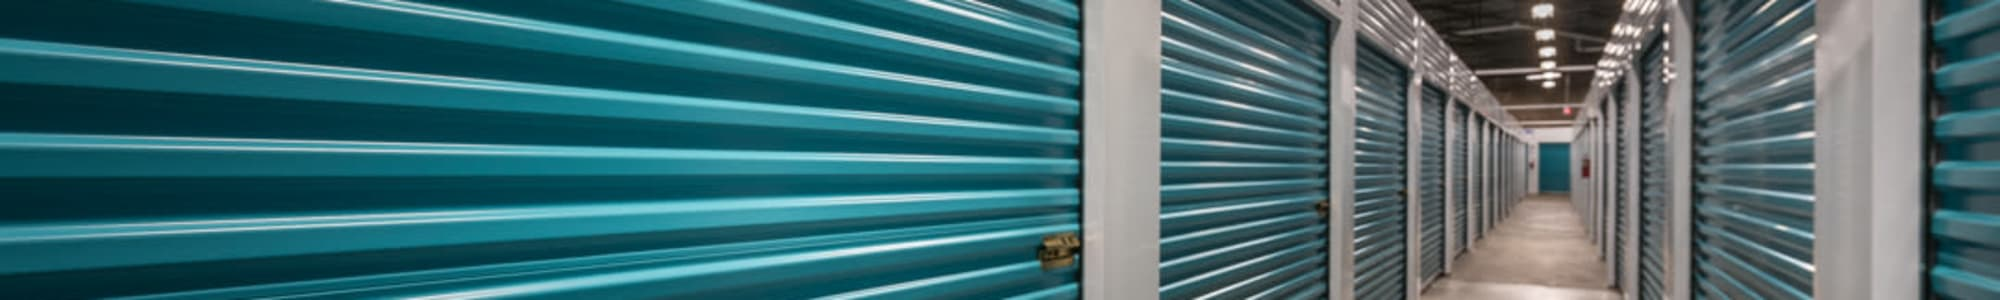 Contact us at Riverfront Self Storage in New Orleans